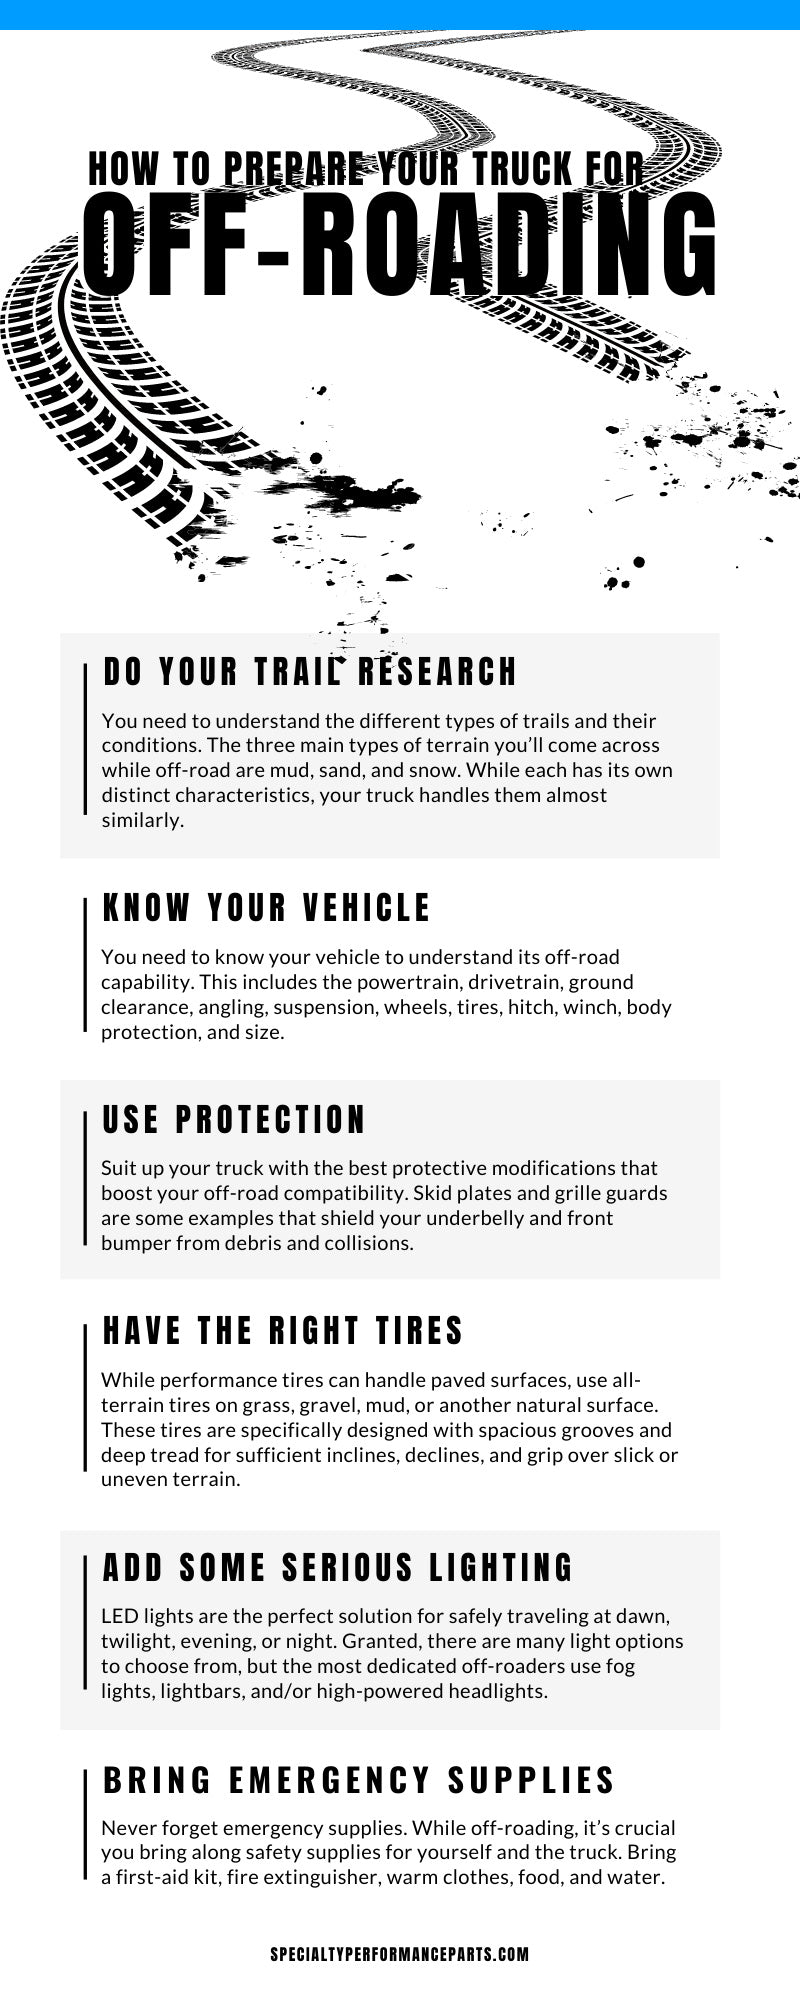 Prepare Truck for Off-Roading Infographic